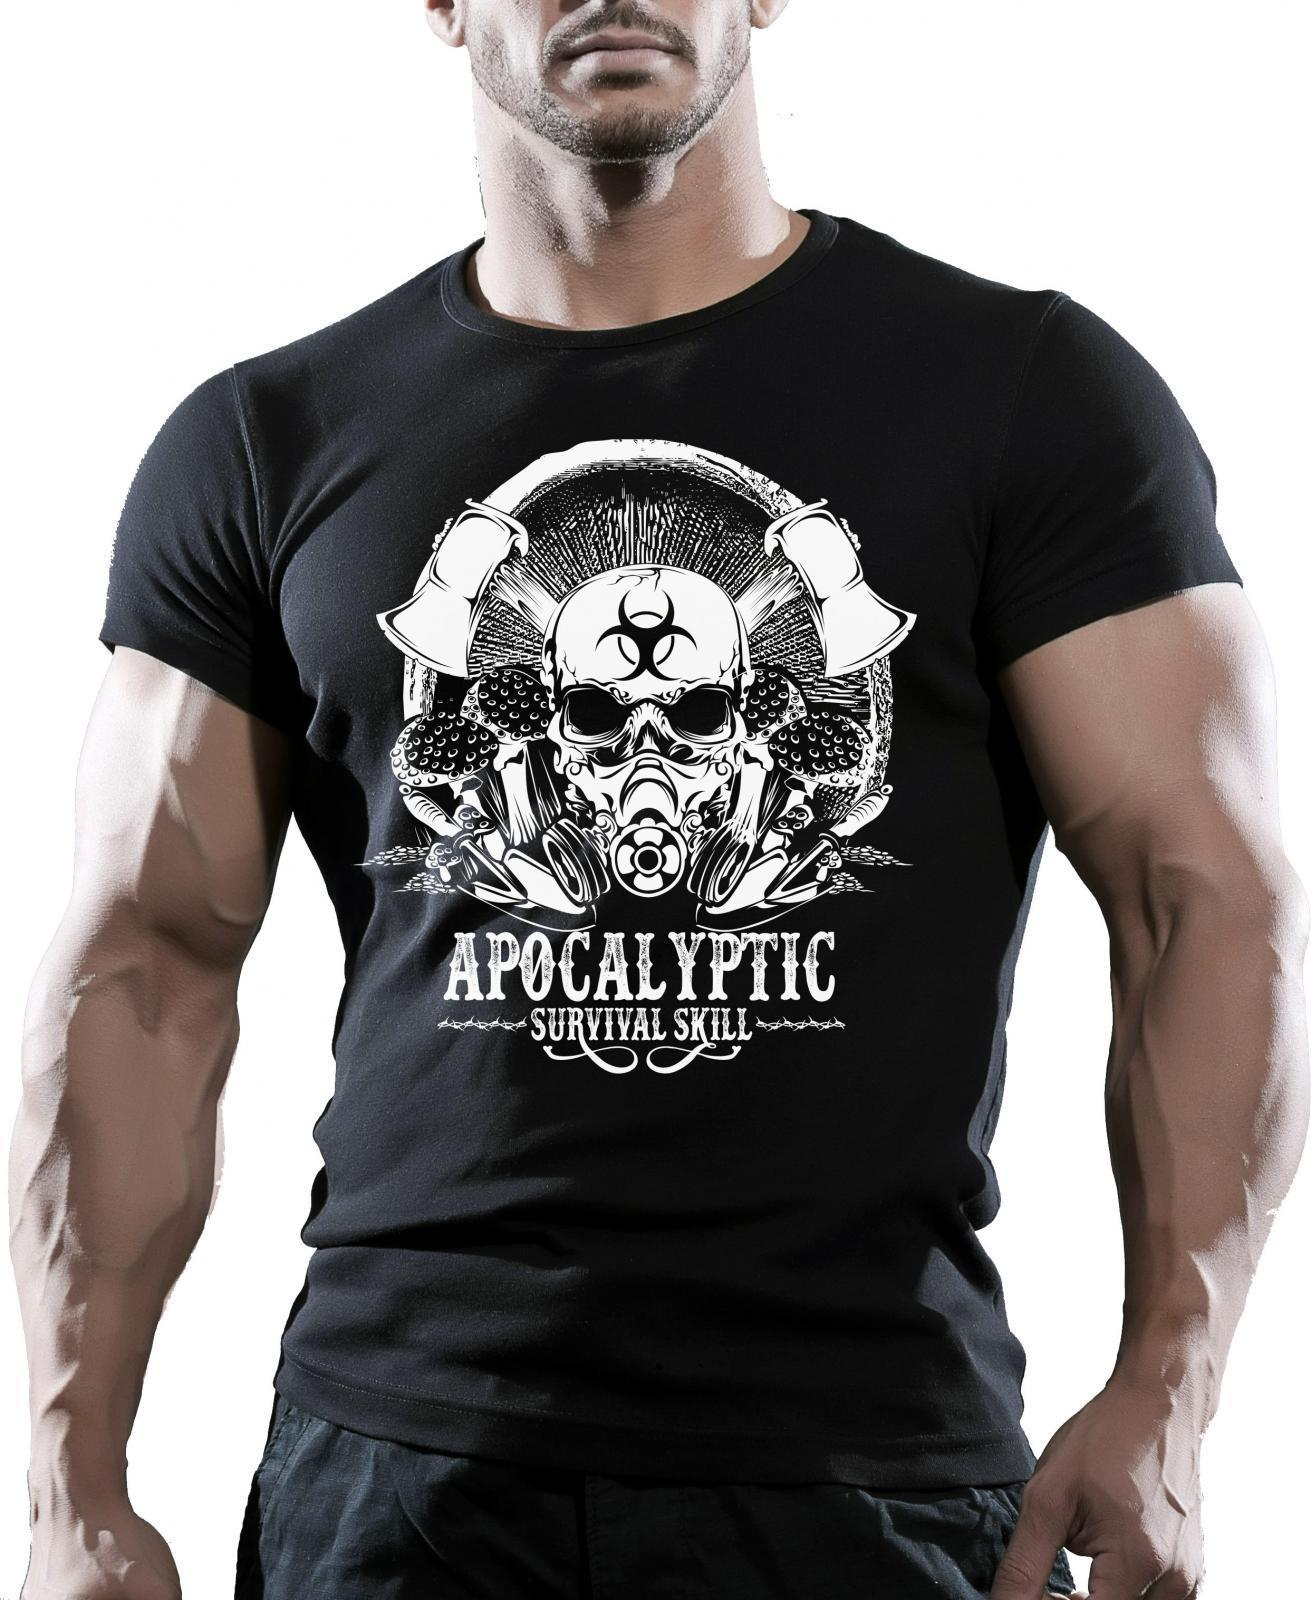 Apocalyptic Survival Skull Mens Zombie Gaming T-Shirt Skull Video Games Printed T Shirts Short Sleeve Hipster Tee